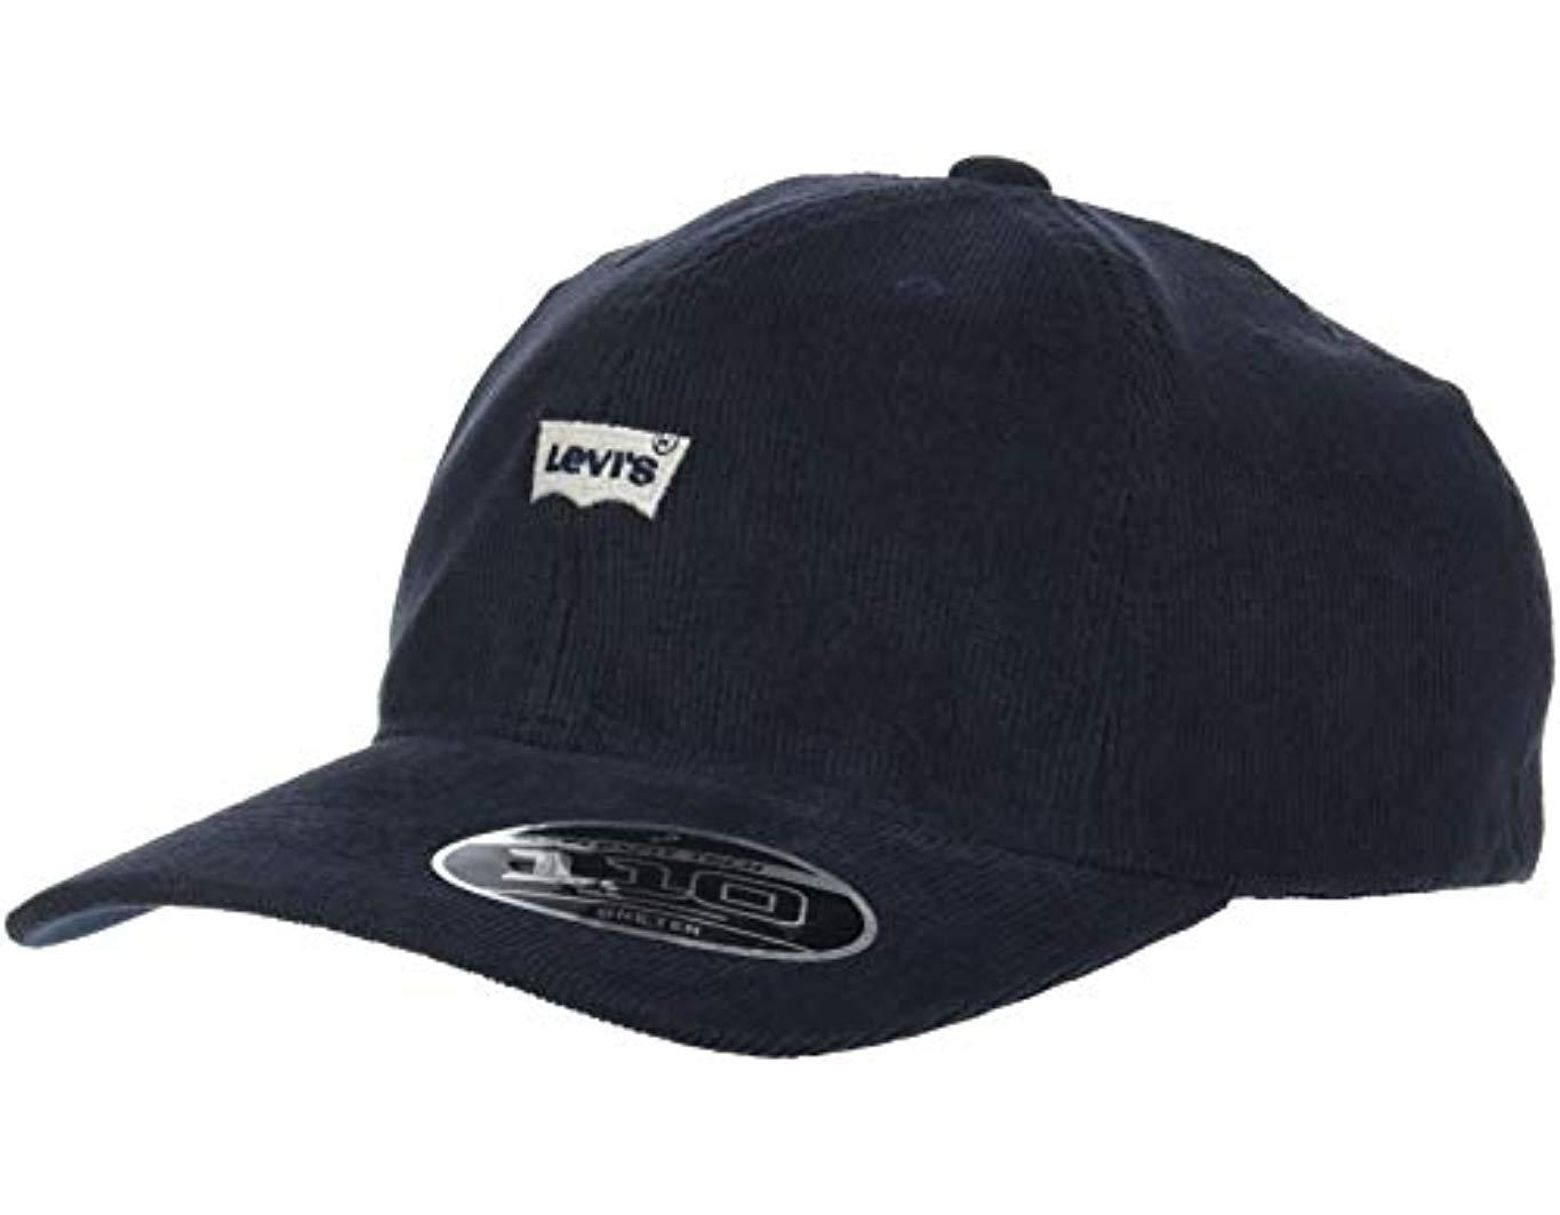 6f95fdcc Levi's Cord Batwing Hat Baseball Cap in Blue for Men - Lyst